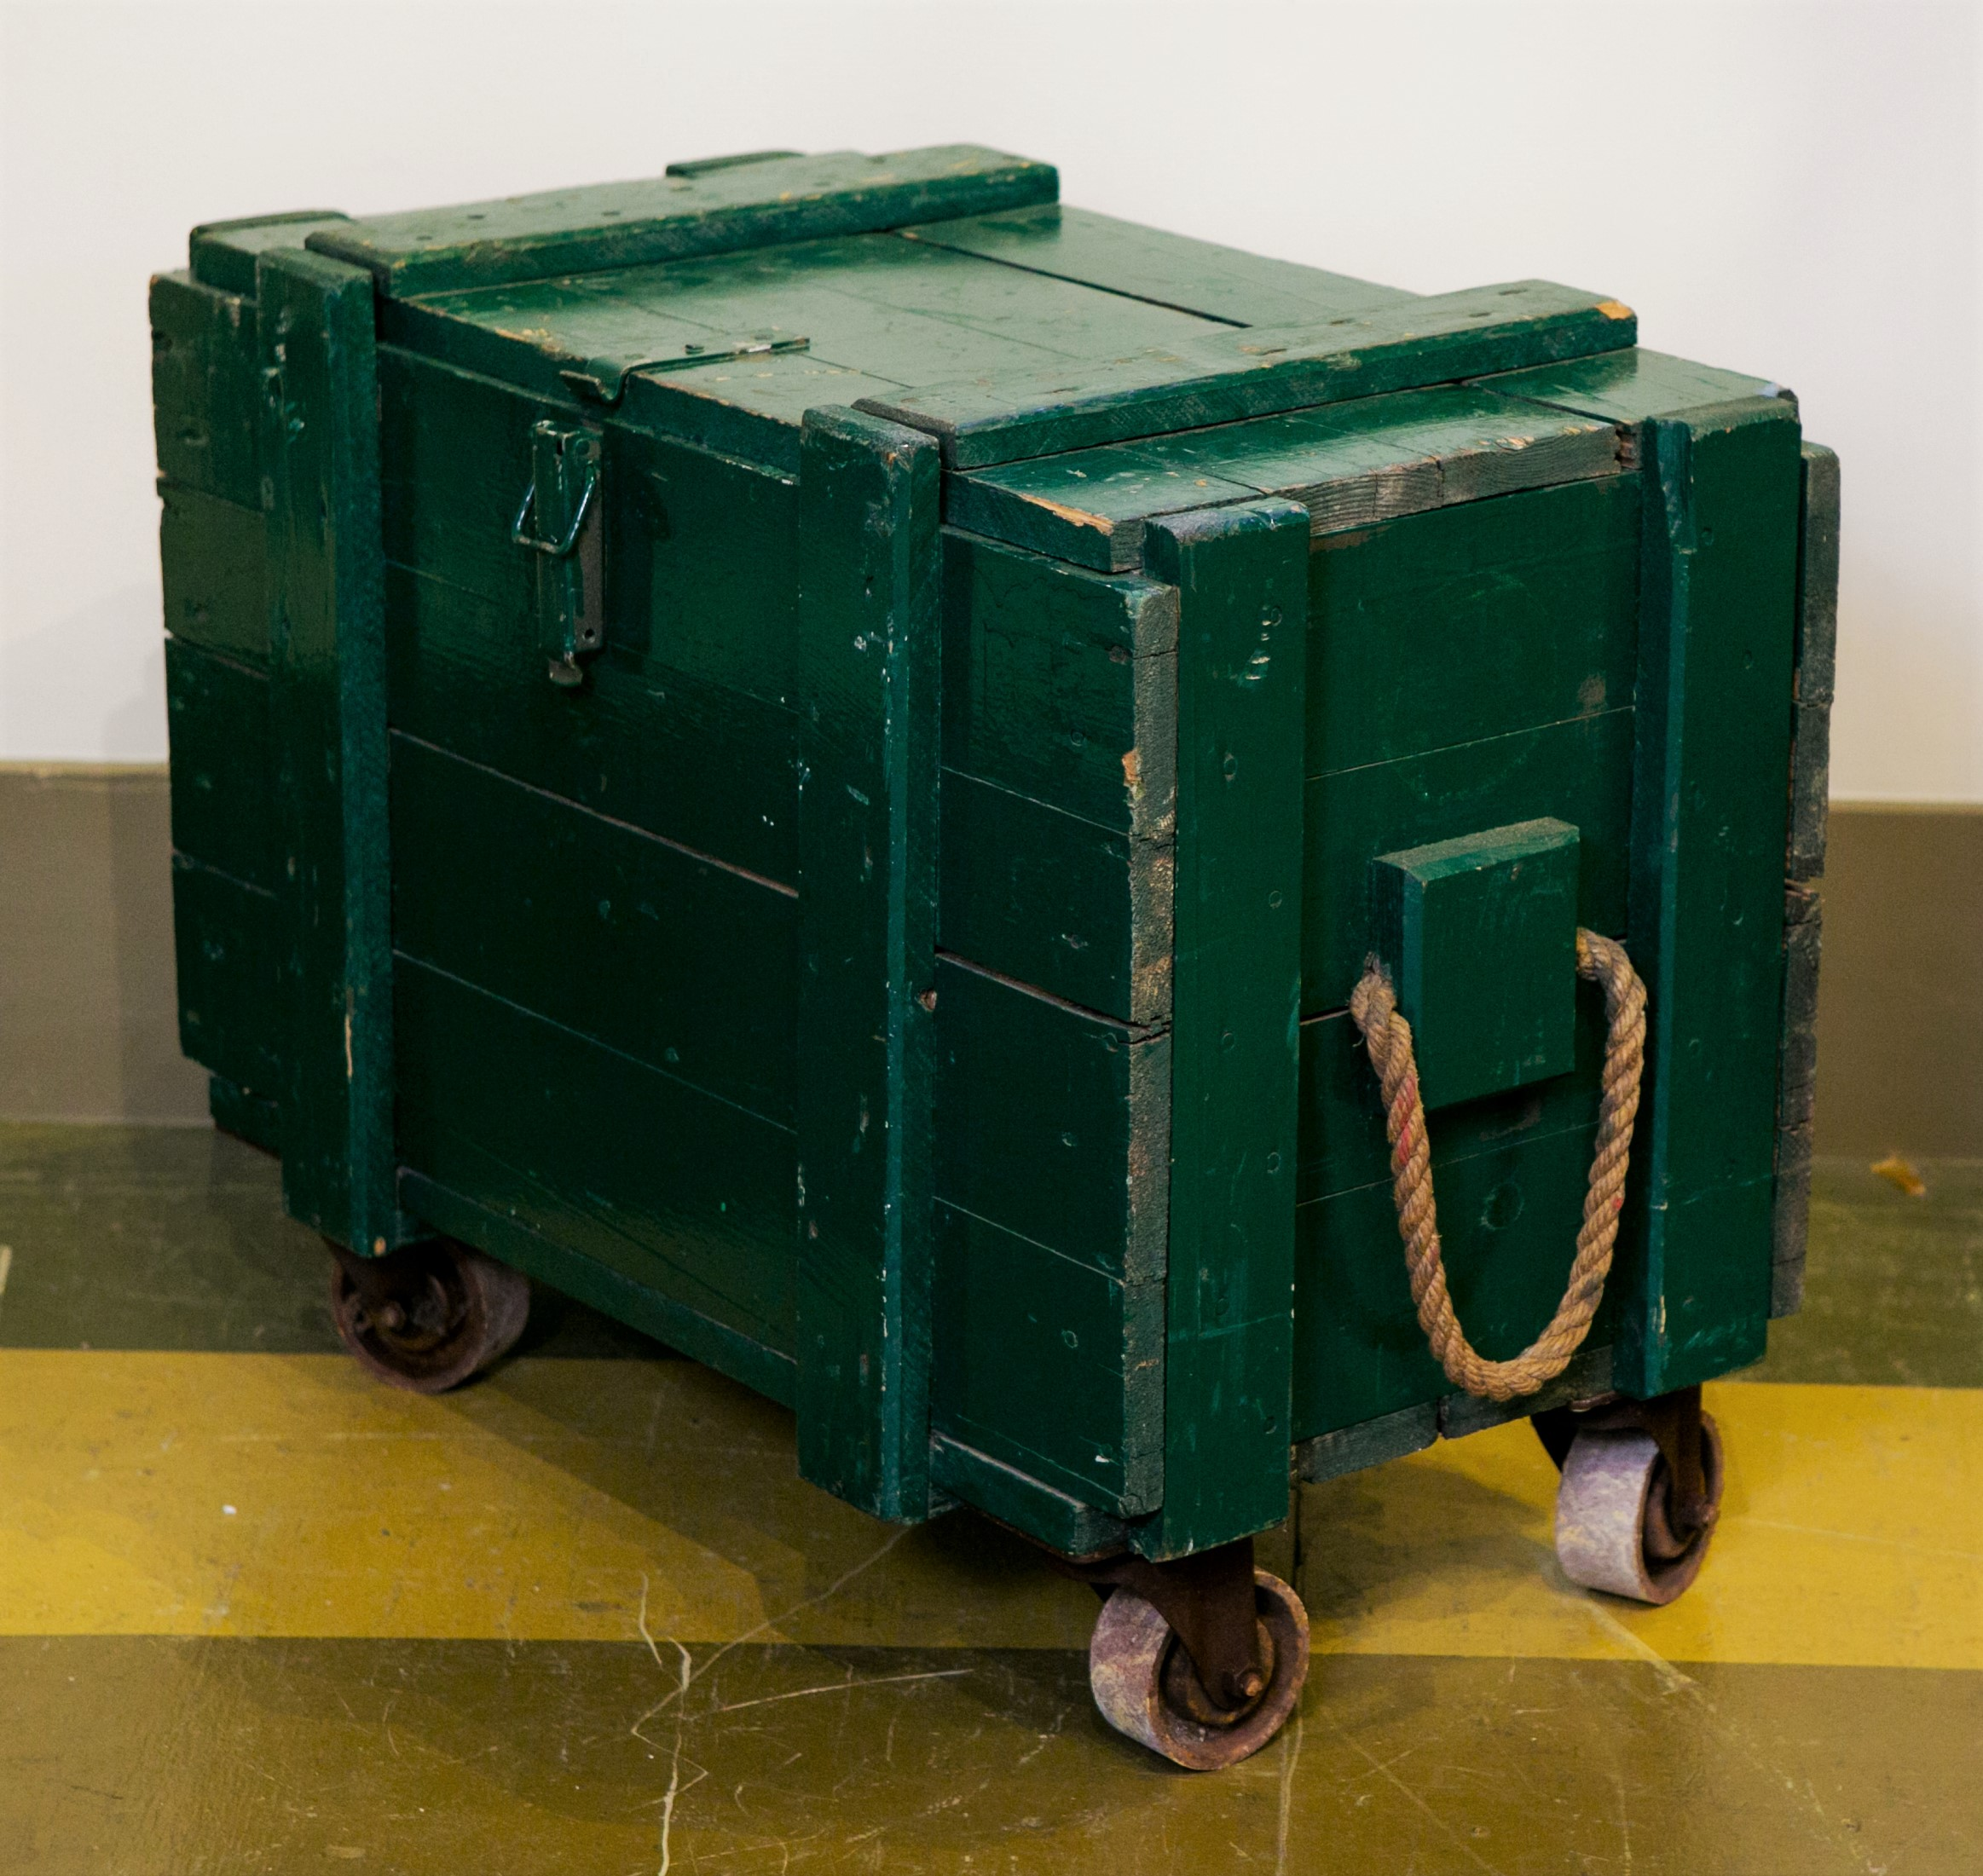 Vintage Green Wooden Trunks on Casters with Rope Handles and Hinged Lid